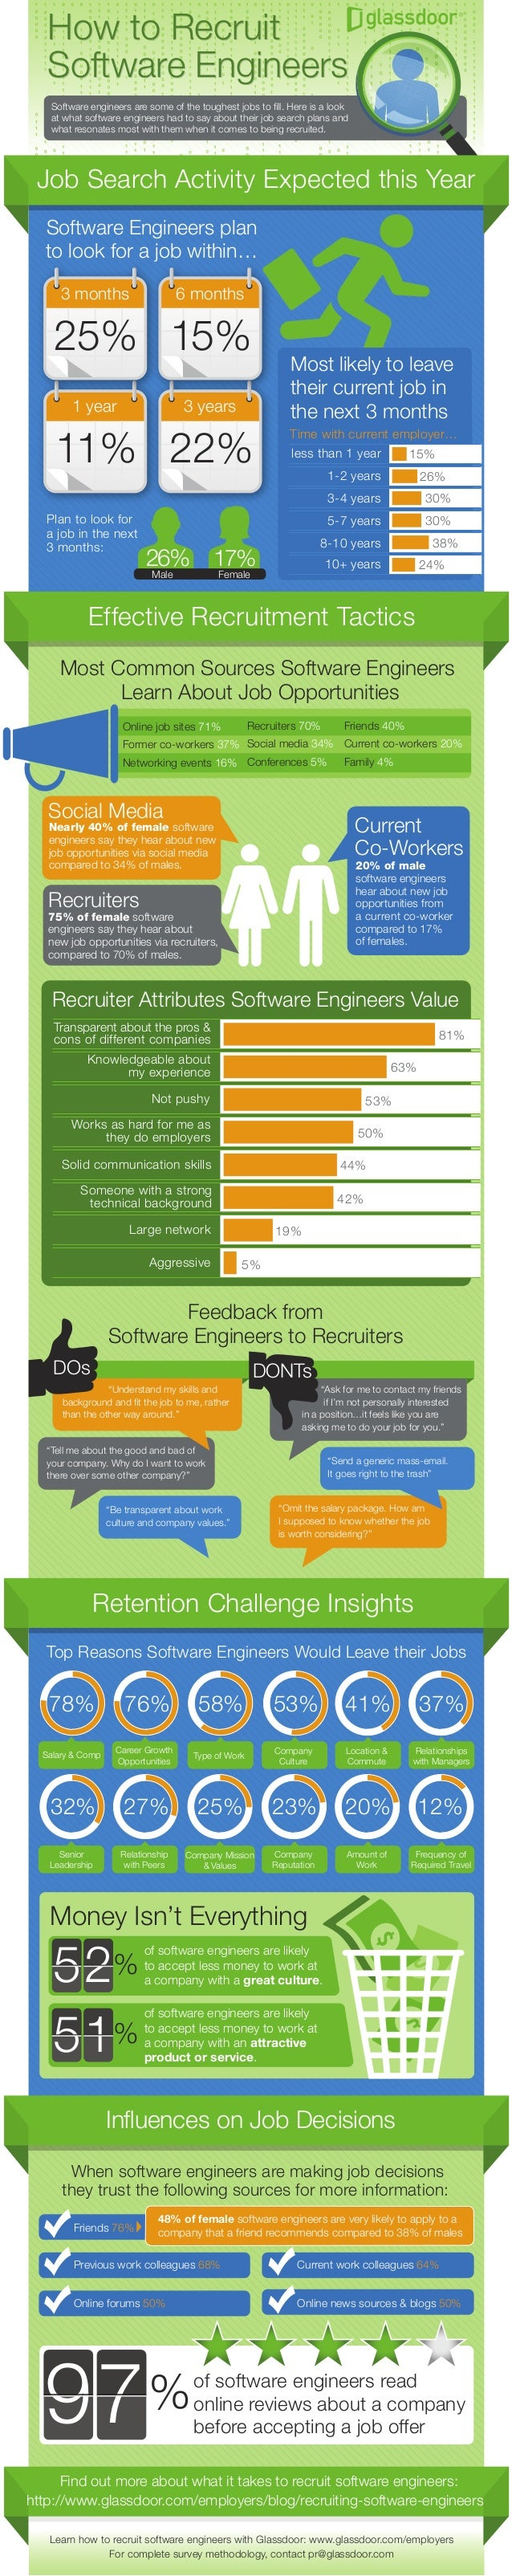 How to Recruit Software Engineers How to Recruit Software Engineers Software engineers are some of the toughest jobs to fil...